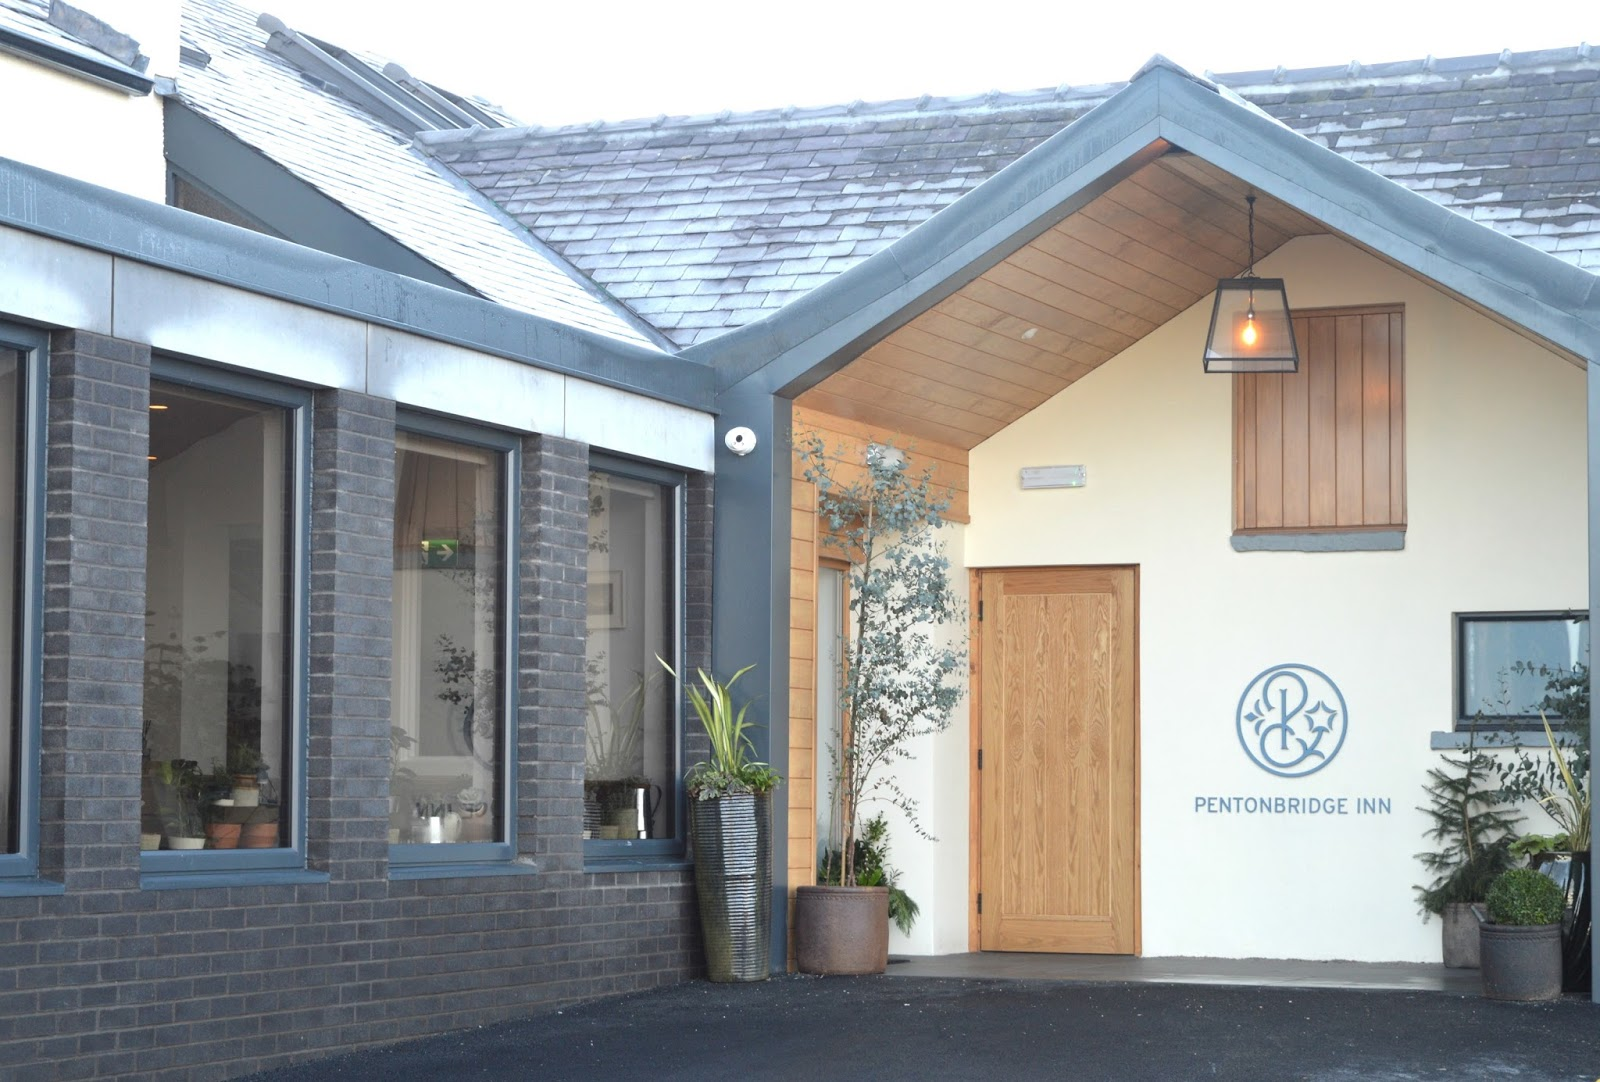 A Luxury Stay at Pentonbridge Inn - The Best Hotel in Cumbria